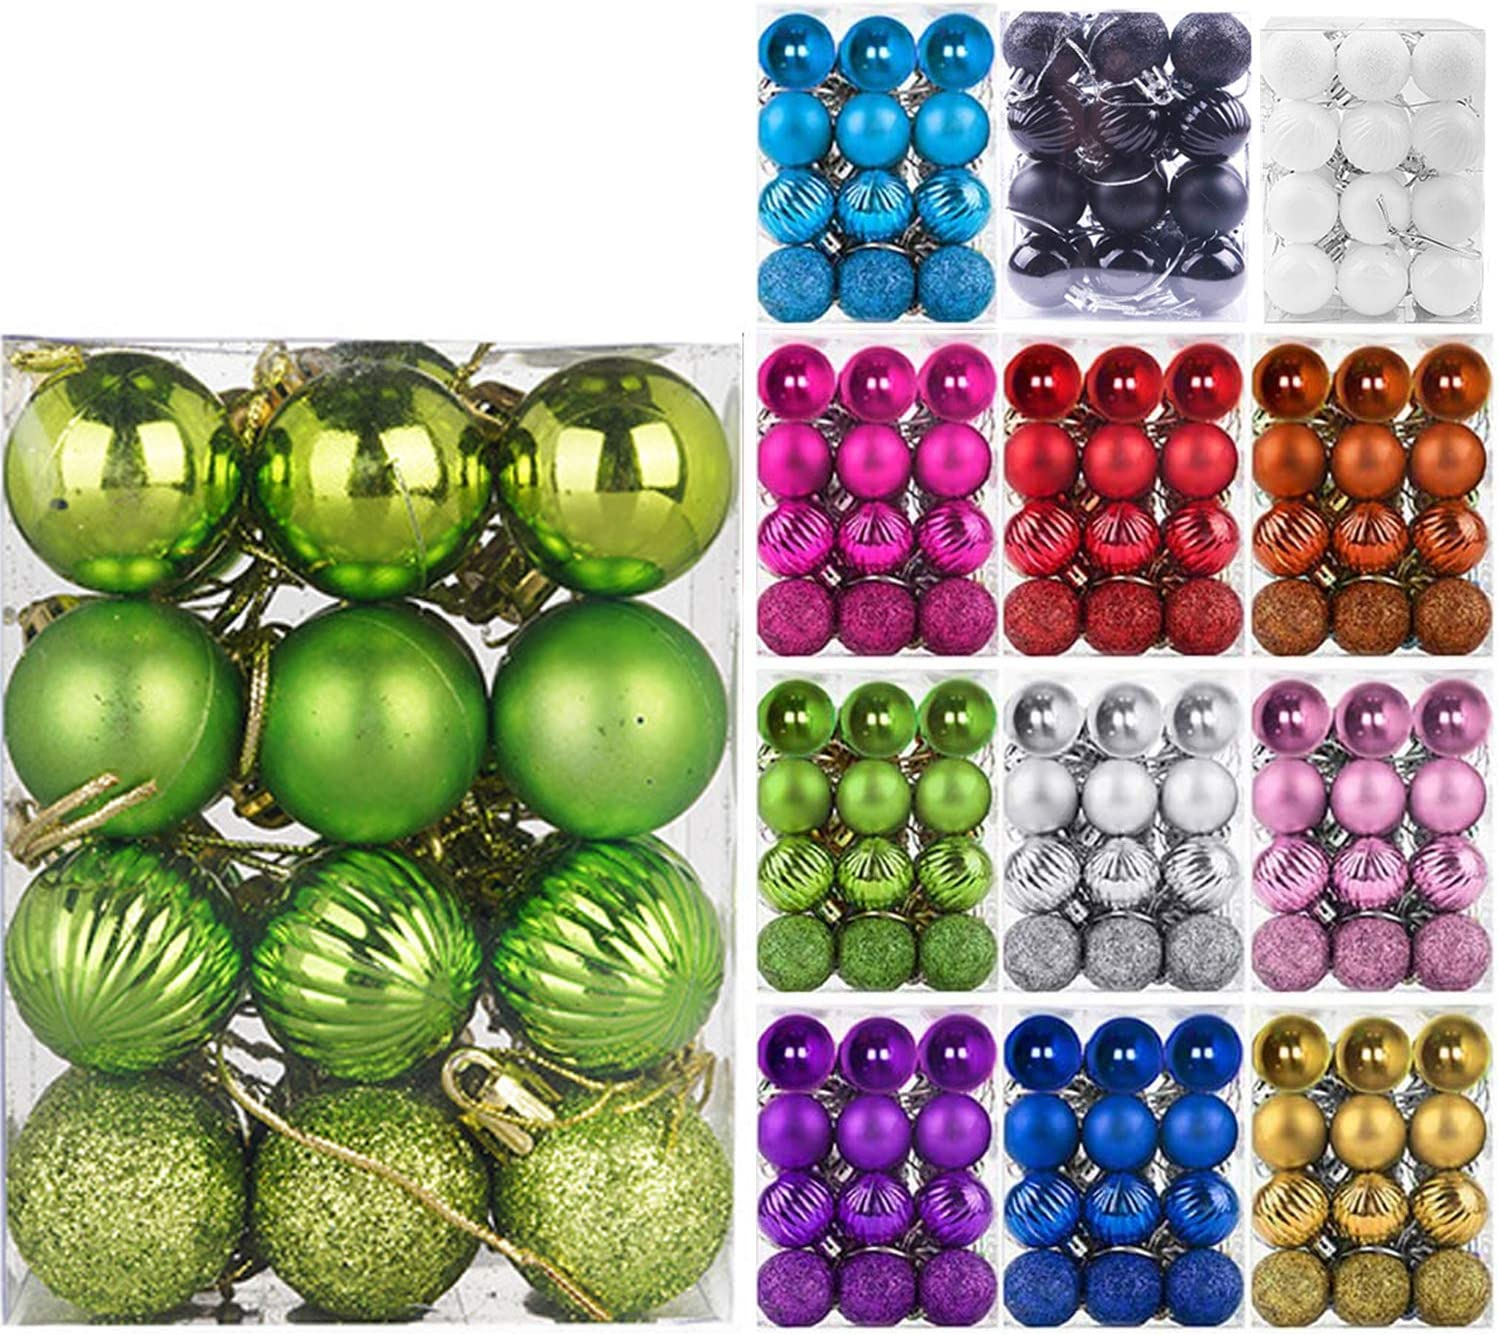 """Emopeak 24Pcs Christmas Balls Ornaments for Xmas Christmas Tree - 4 Style Shatterproof Christmas Tree Decorations Hanging Ball for Holiday Wedding Party Decoration (Grass Green, 1.3""""/3.2CM)"""